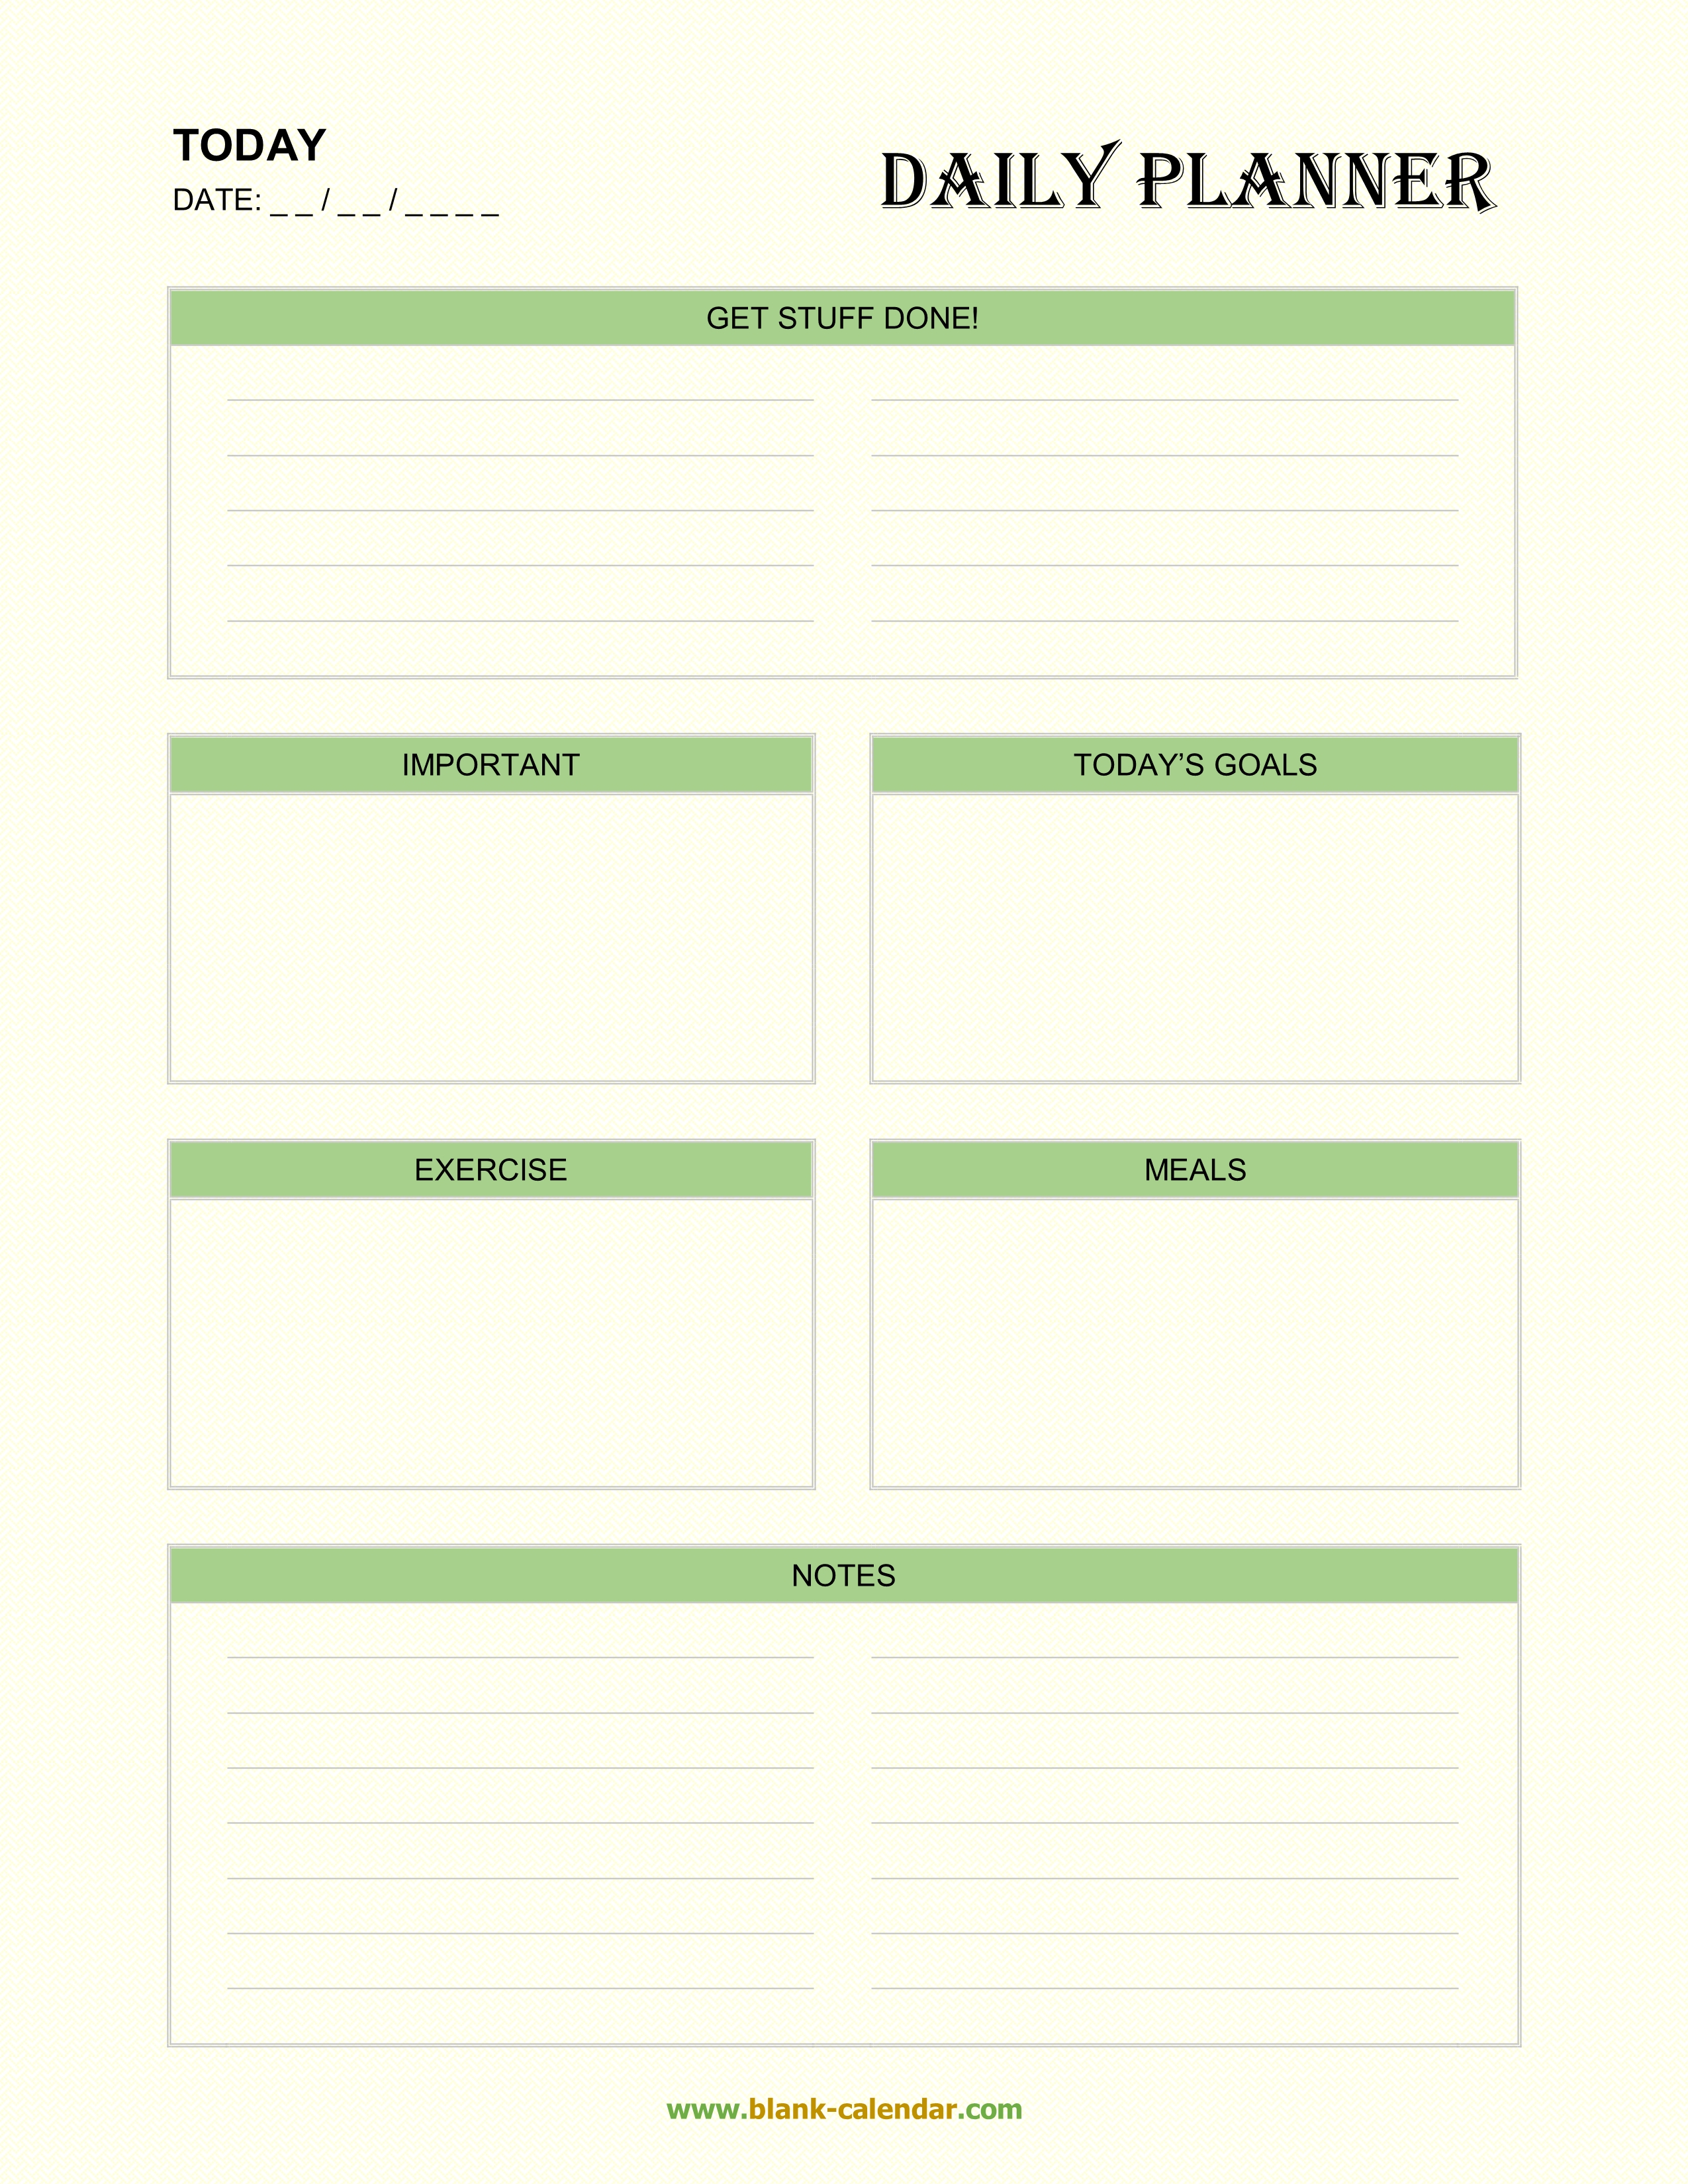 Daily Planner Templates (Word, Excel, Pdf) within Daily Planner Printable Calendar Templates